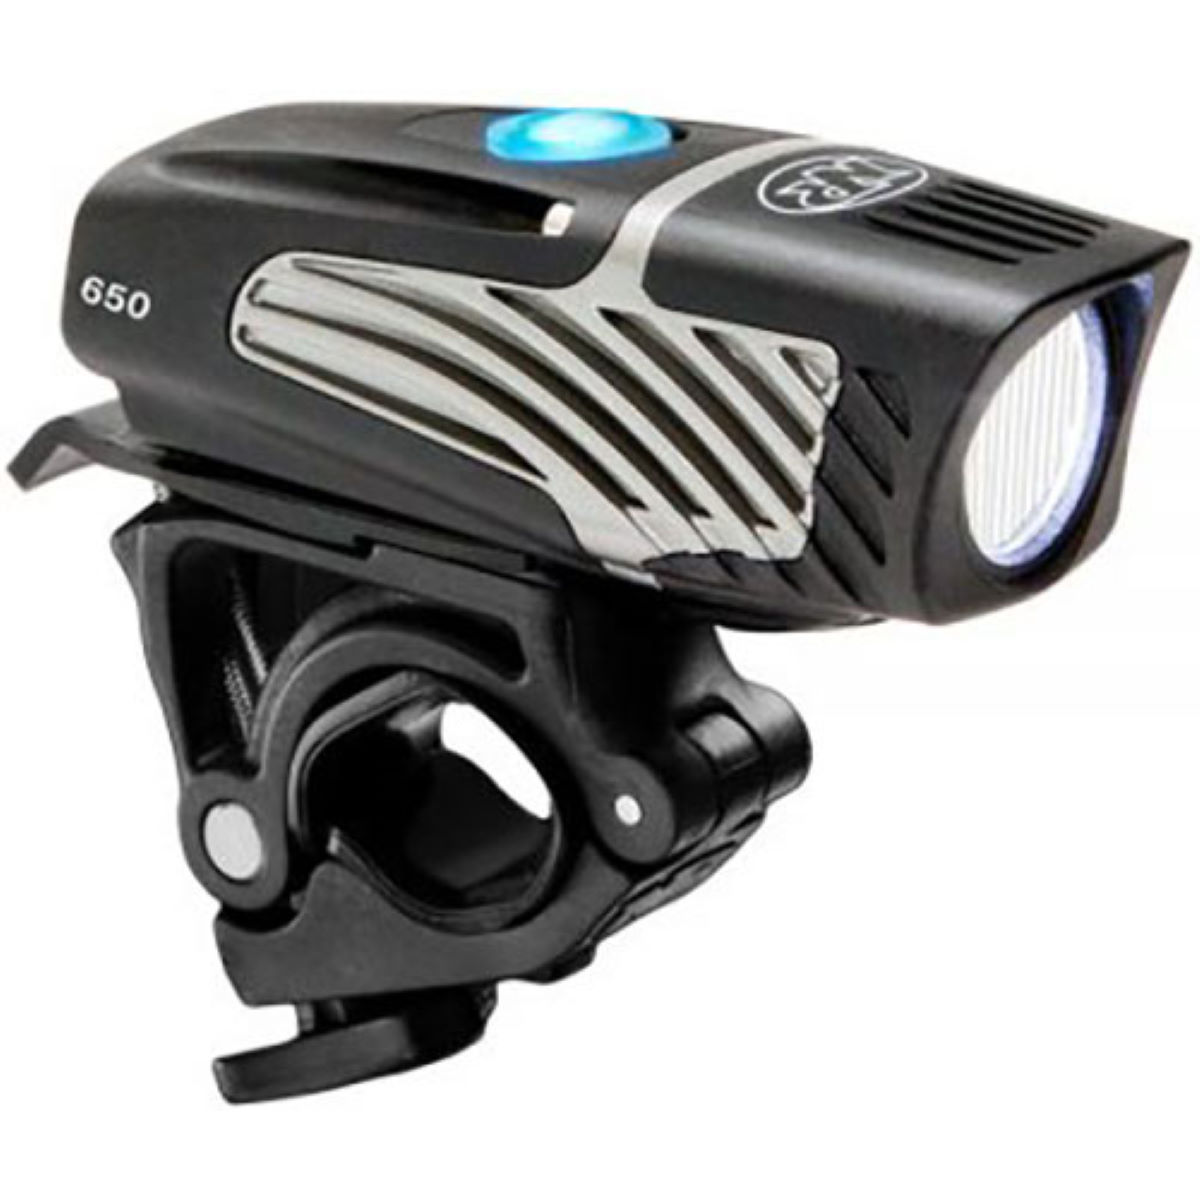 NiteRider Lumina Micro 650 Front Light - Luces delanteras